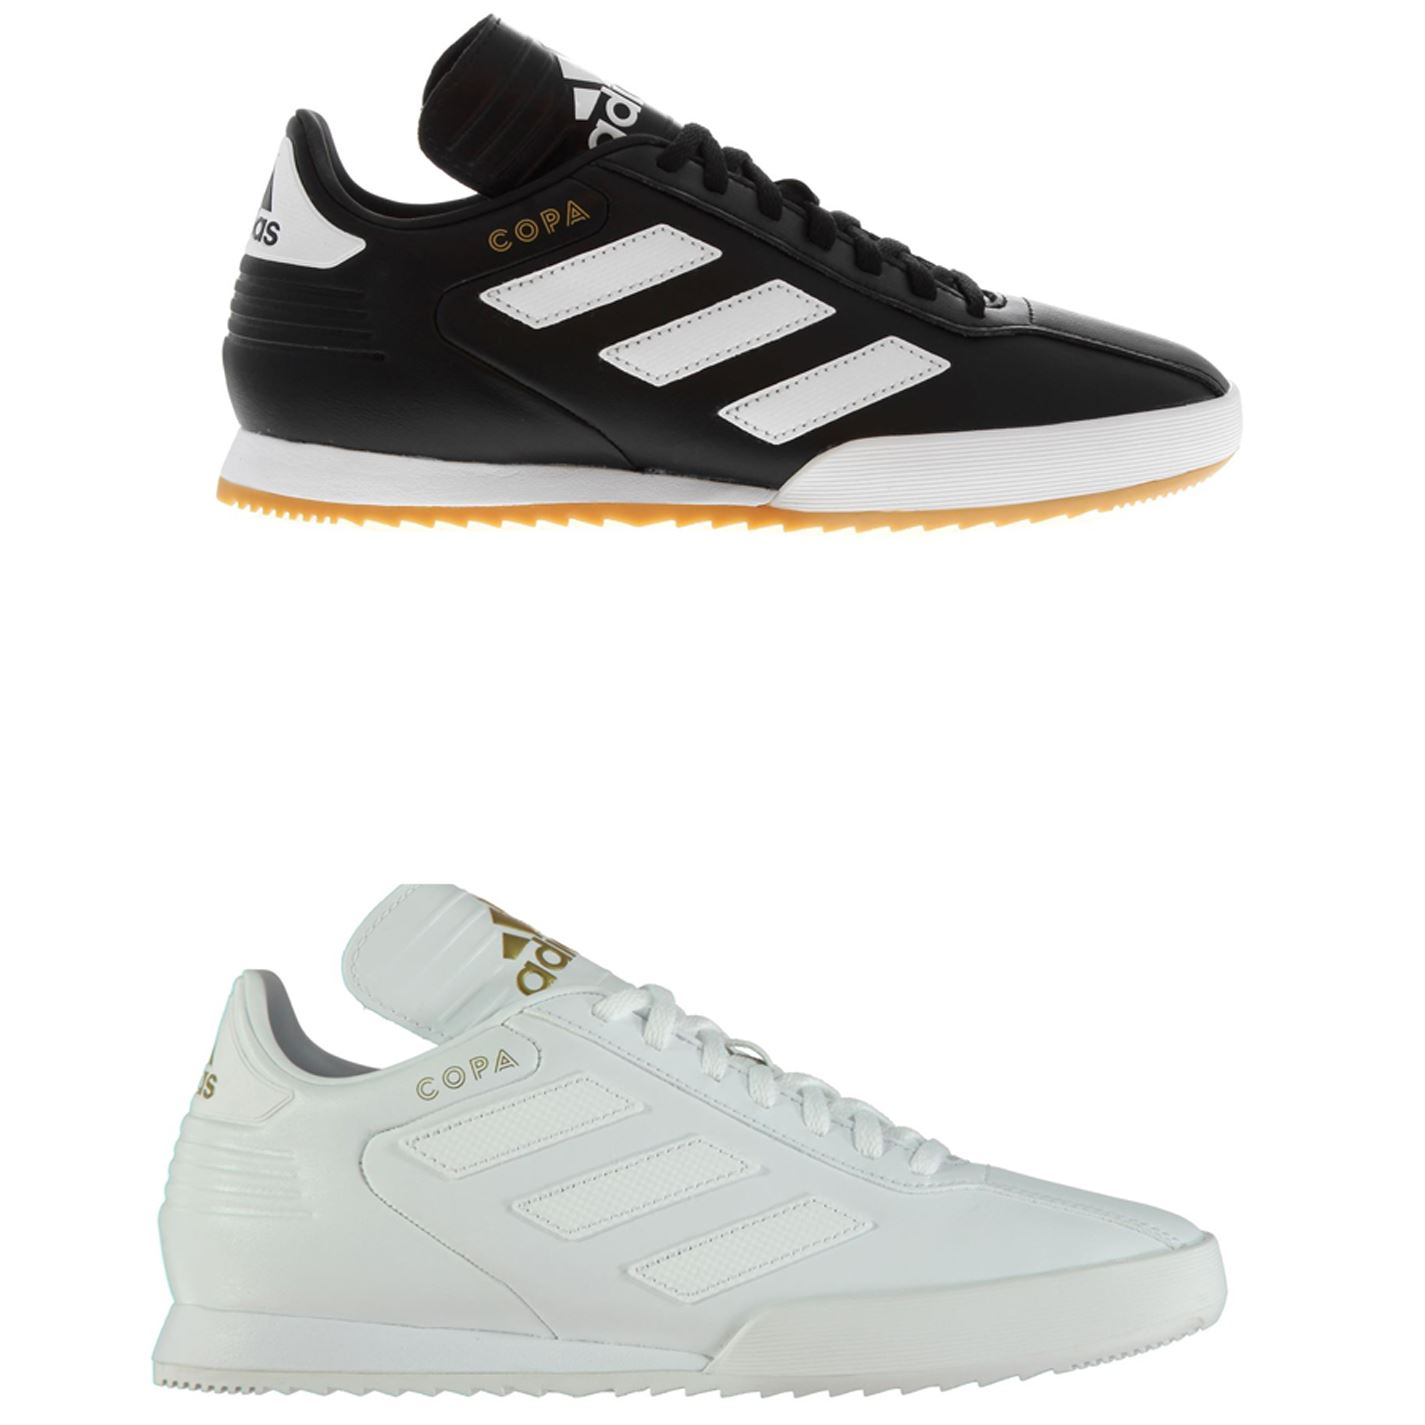 f11f54517 ... adidas Copa Super Leather Trainers Mens Athleisure Footwear Shoes  Sneakers ...